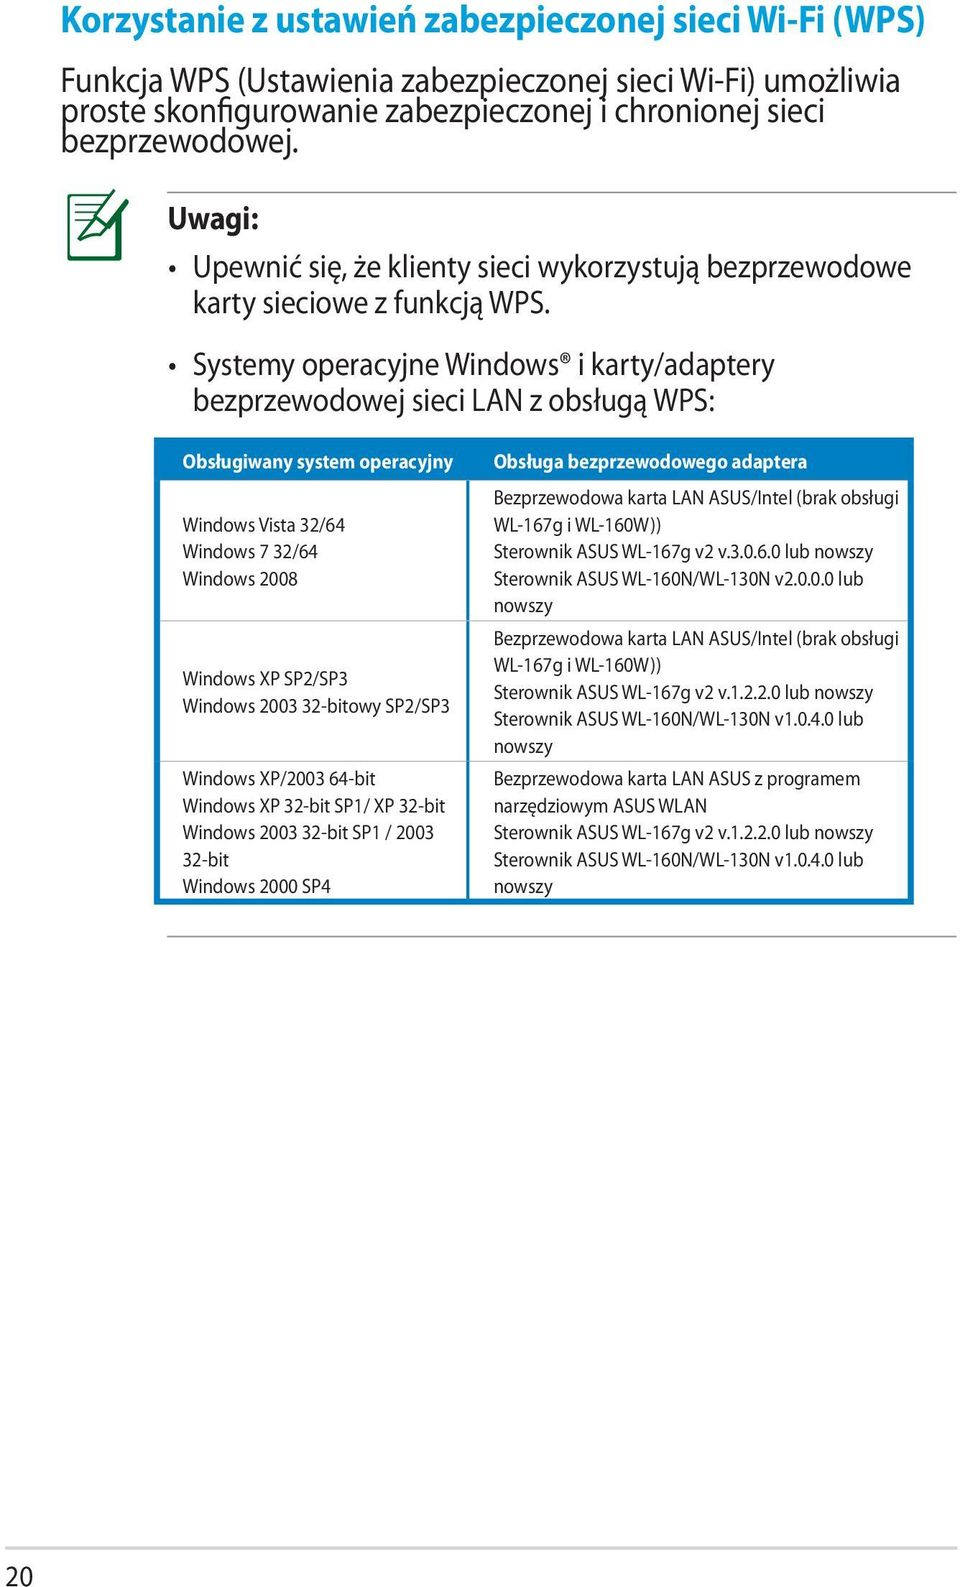 Systemy operacyjne Windows i karty/adaptery bezprzewodowej sieci LAN z obsługą WPS: Obsługiwany system operacyjny Windows Vista 32/64 Windows 7 32/64 Windows 2008 Windows XP SP2/SP3 Windows 2003